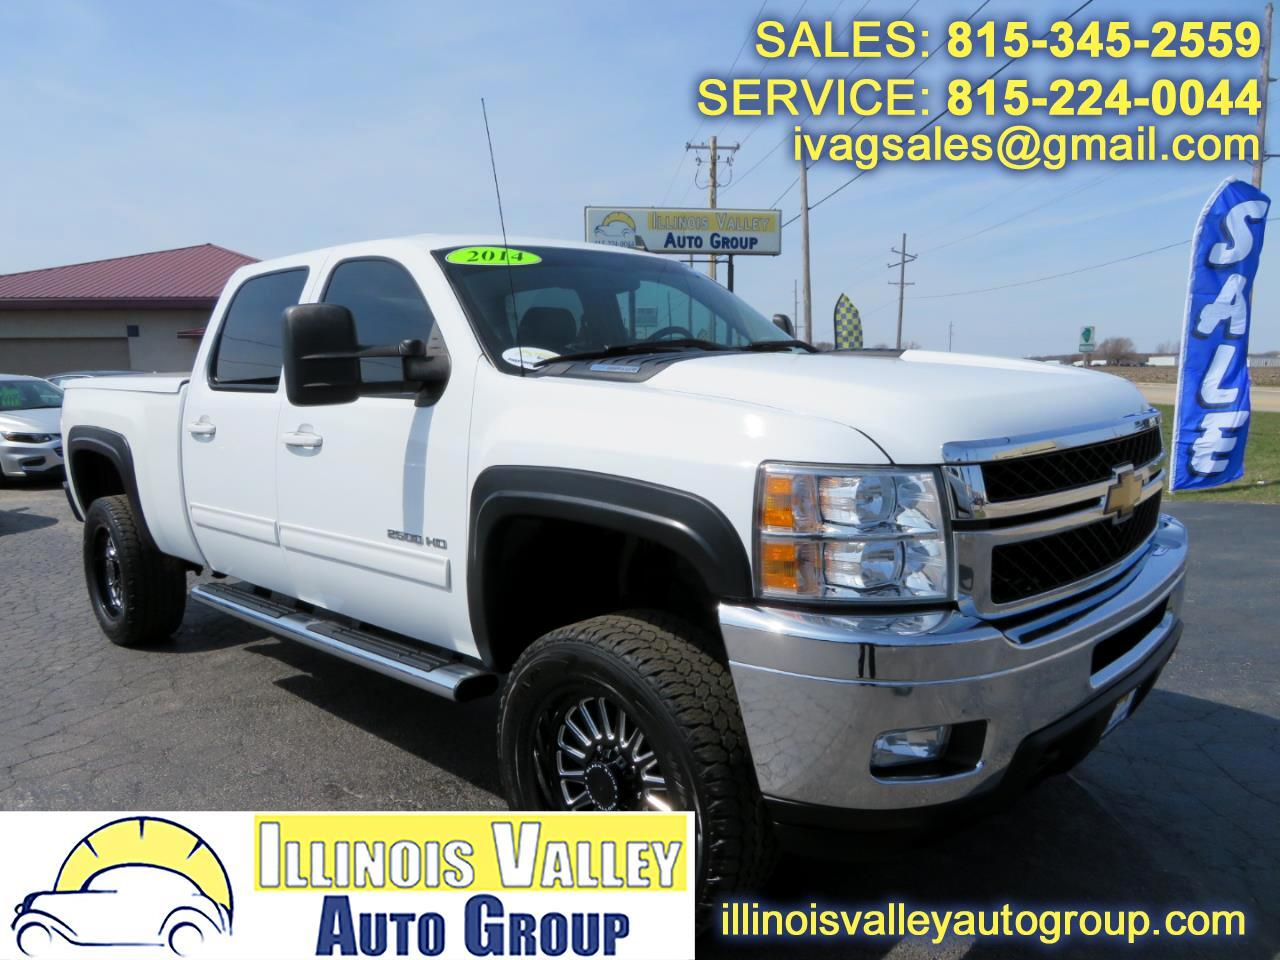 2014 Chevrolet Silverado 2500HD LTZ Crew Cab Short Bed 4WD